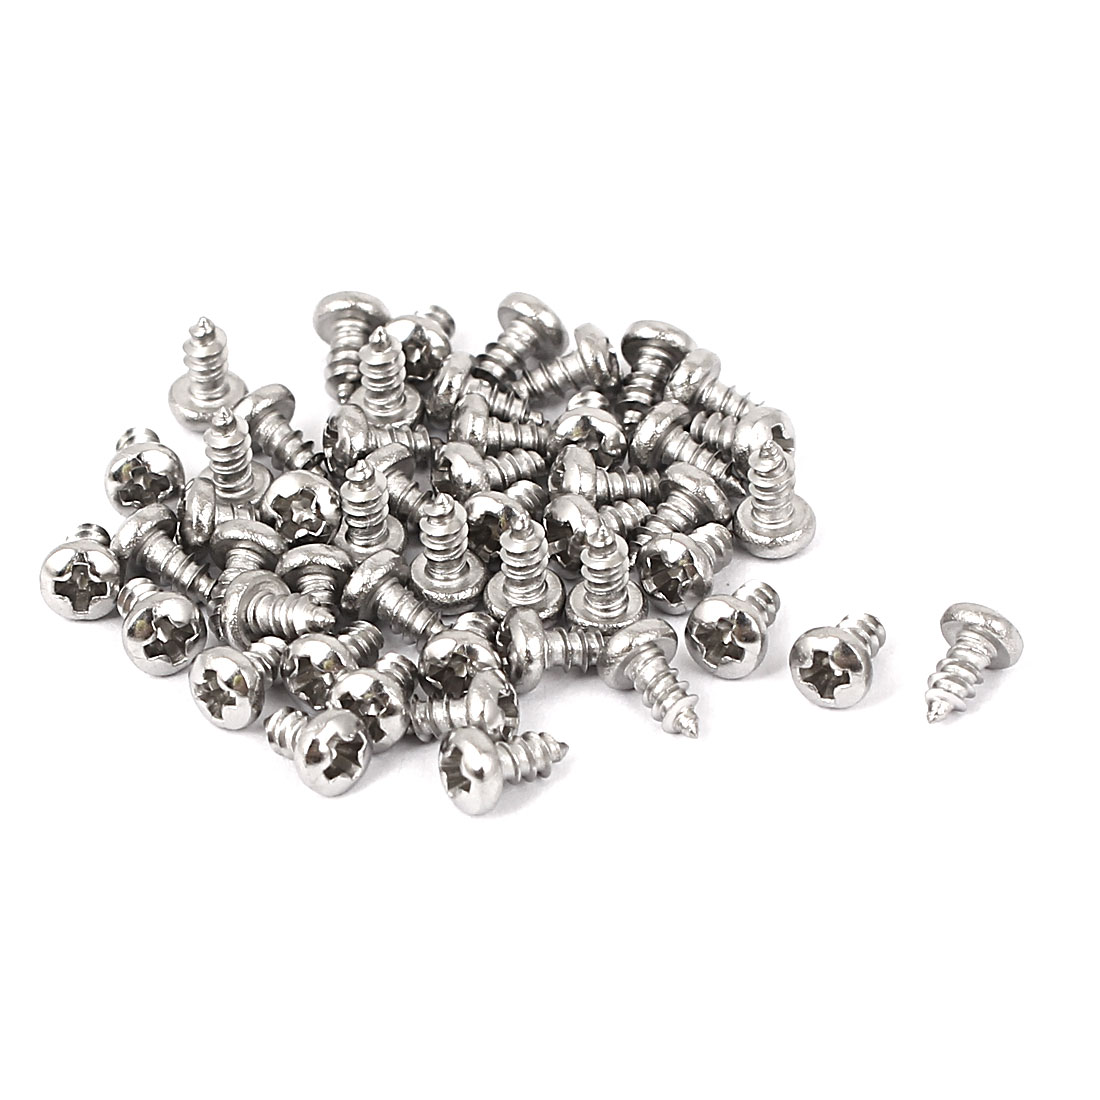 M2.2x4.5mm Stainless Steel Phillips Round Pan Head Self Tapping Screws 50pcs